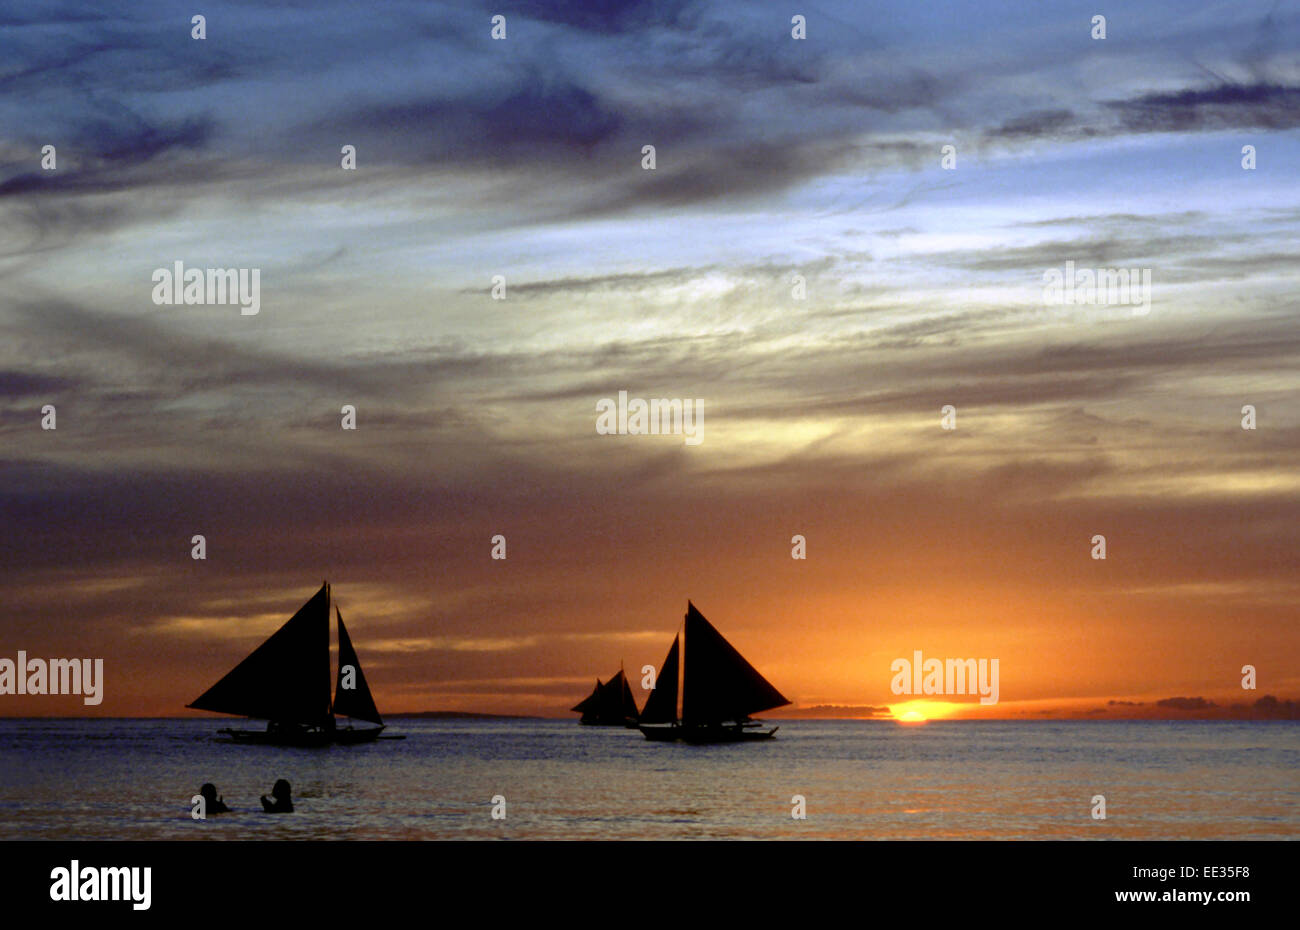 Sunset in White beach. Boracay. Boats or bankas saling near the coast. Romantic. Boracay is a small island in the - Stock Image